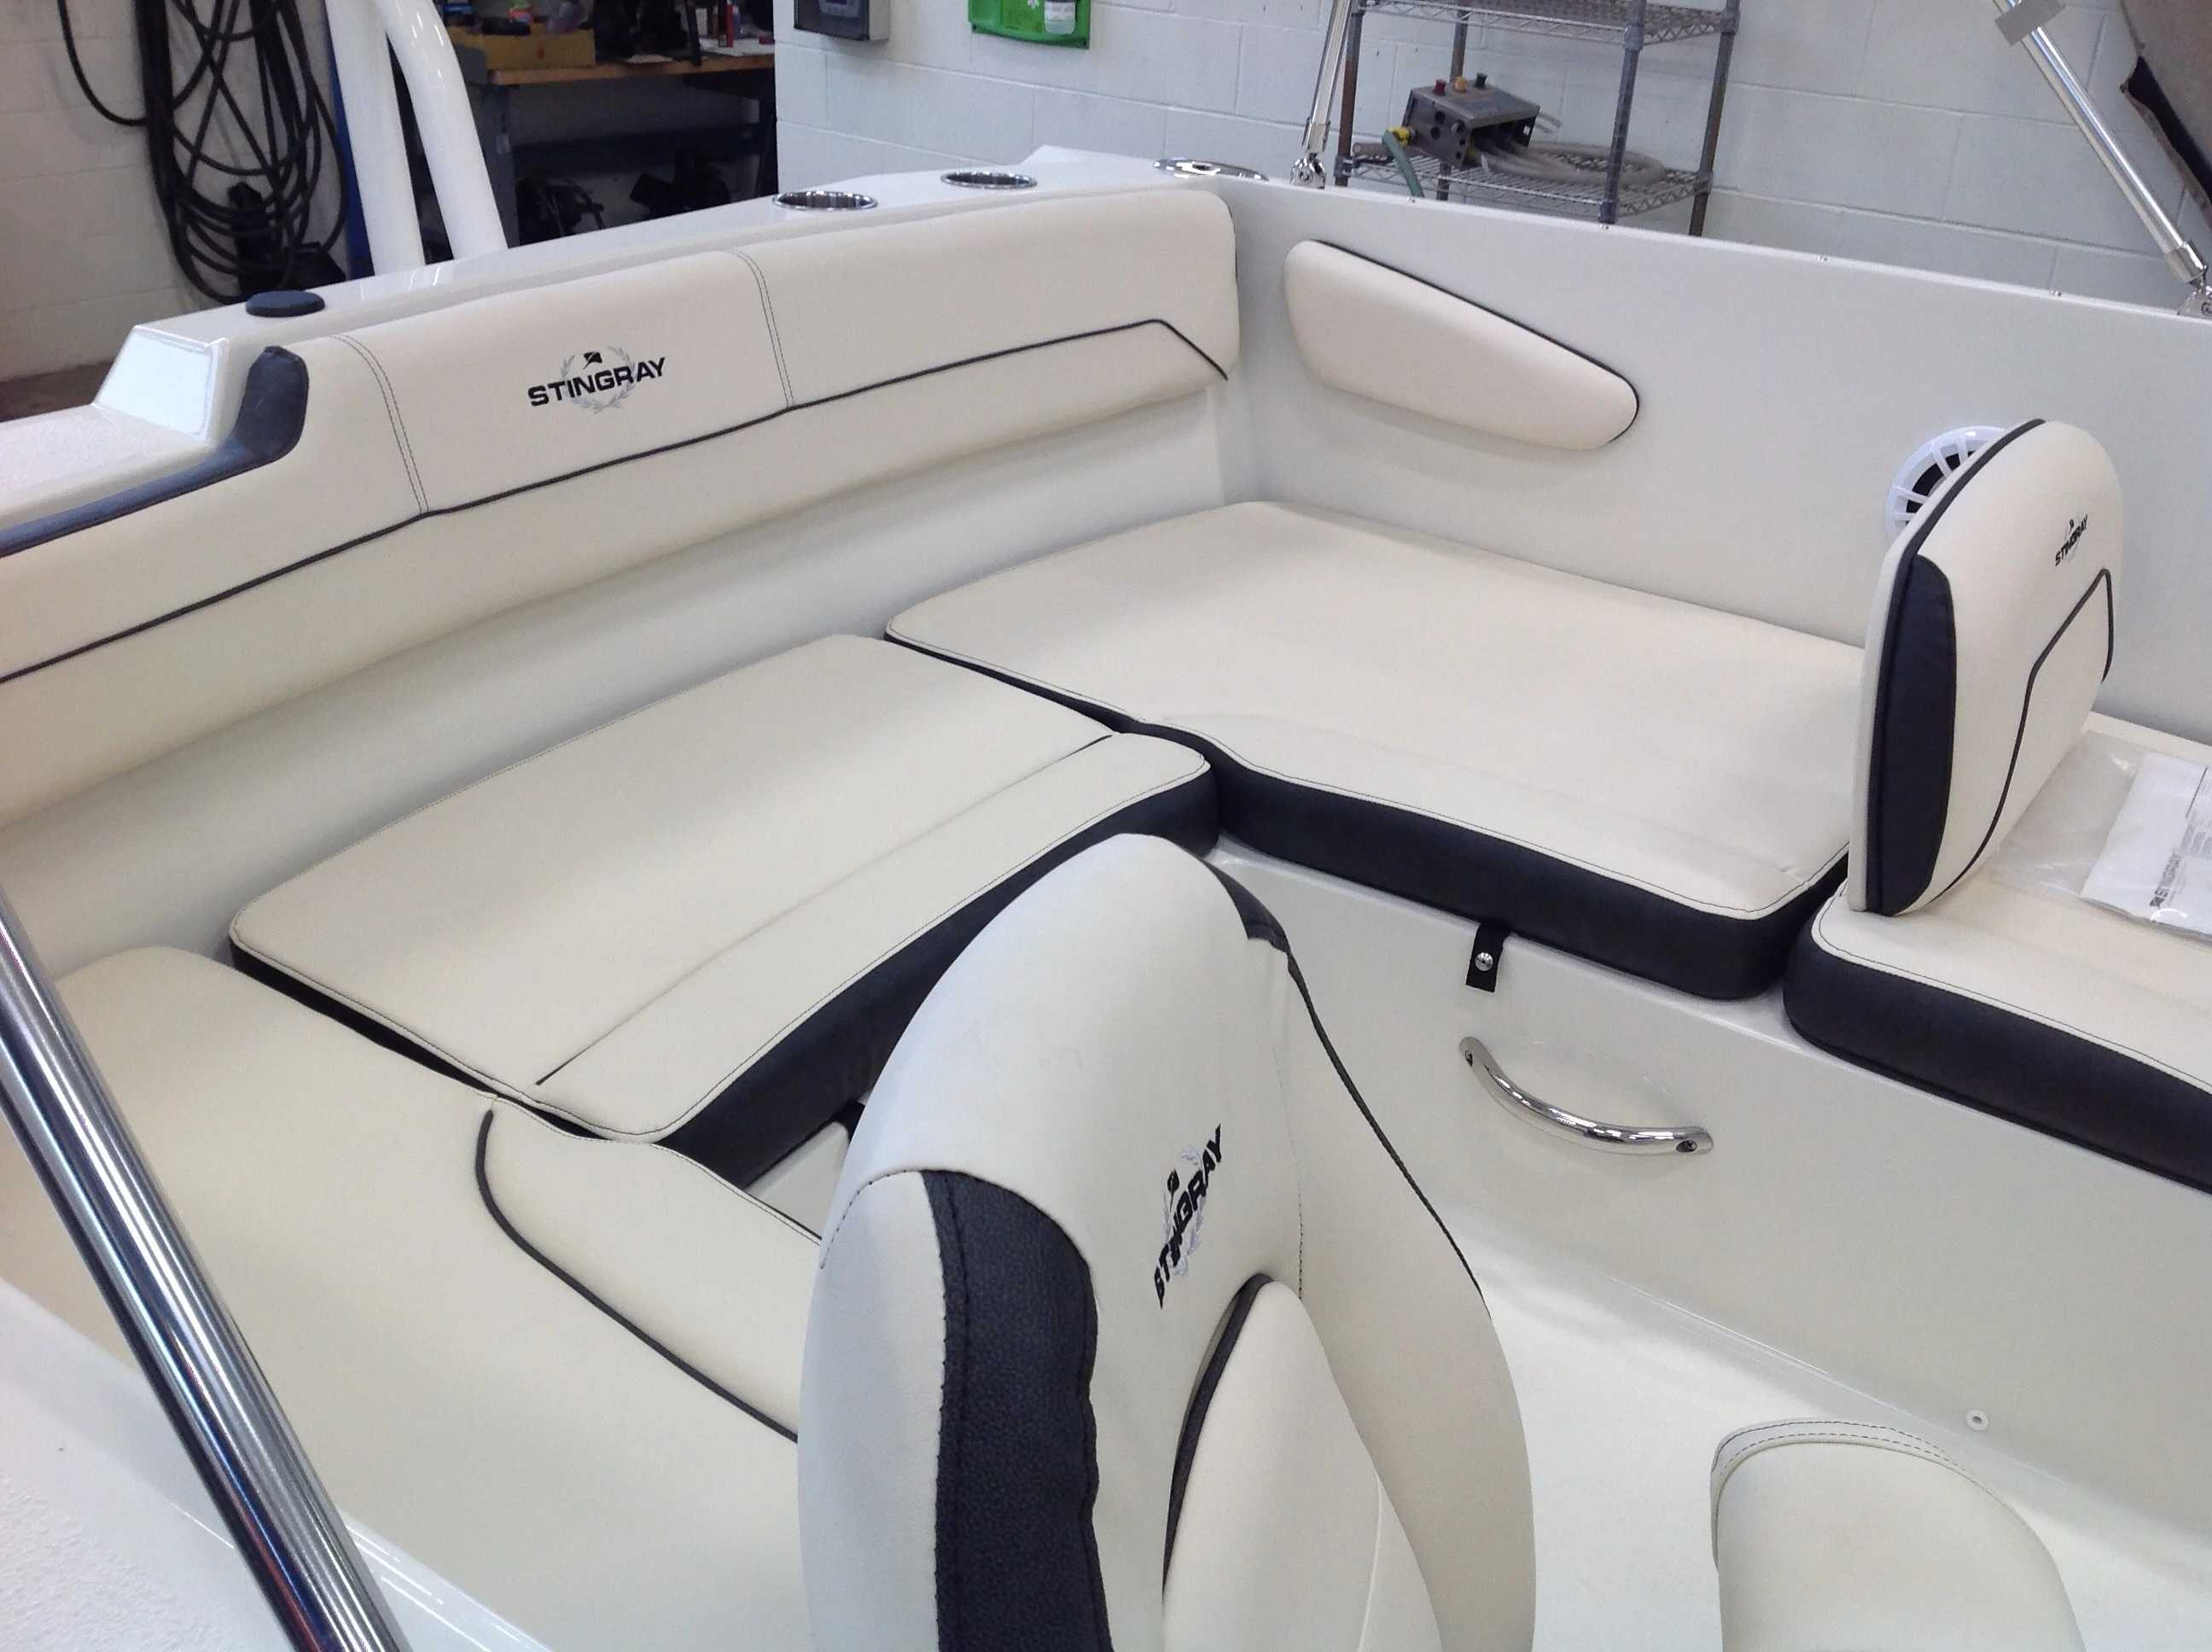 2022 Stingray boat for sale, model of the boat is 172sc & Image # 15 of 17